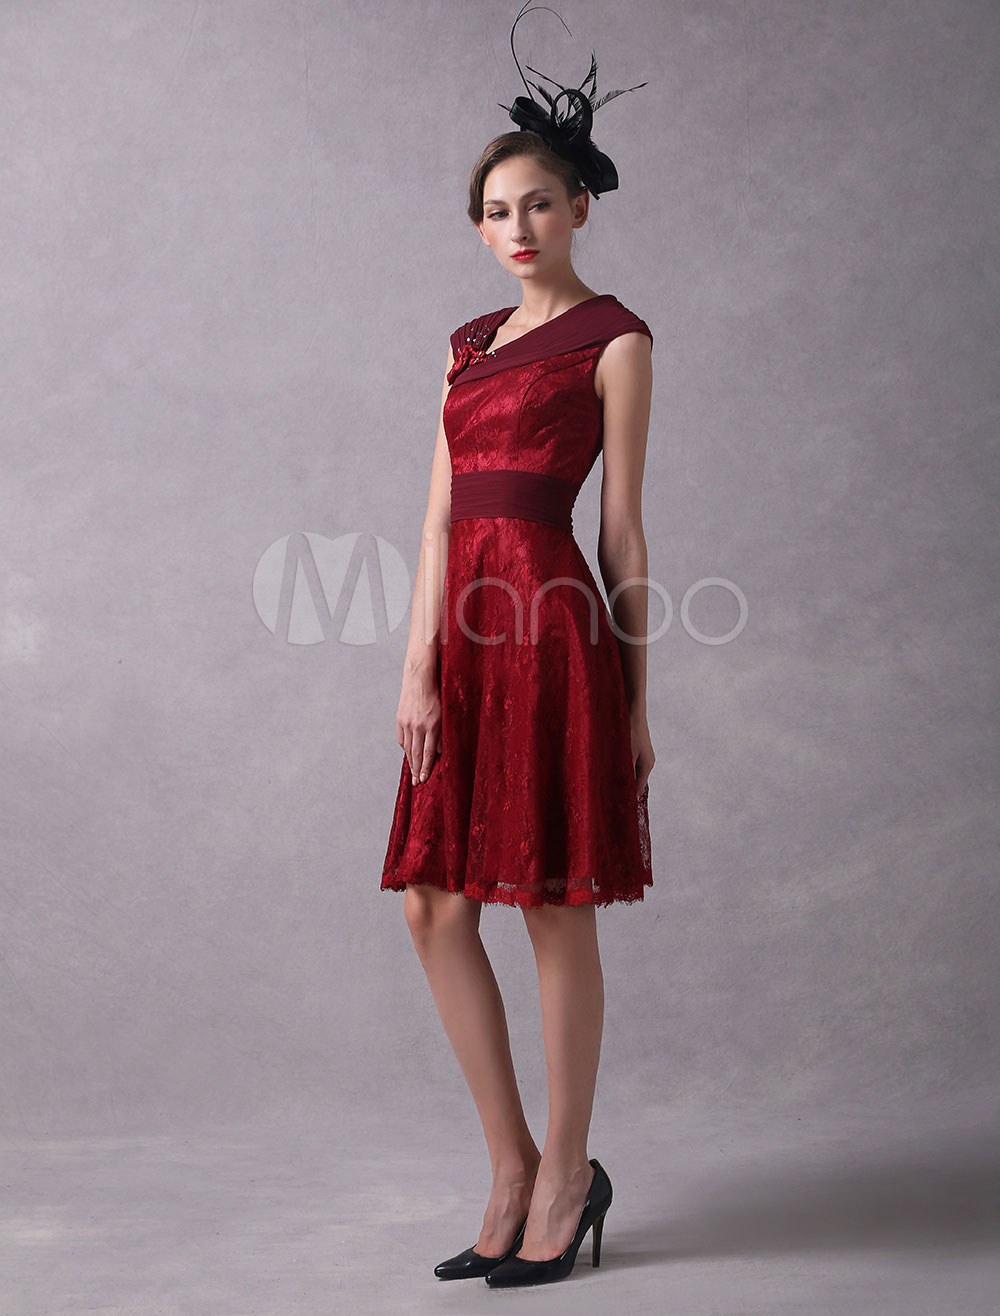 Buy Wedding Guest Dresses Burgundy Lace Wedding Guest Dress Pleated Sleeveless Knee Length Wedding Party Dress for $126.14 in Milanoo store